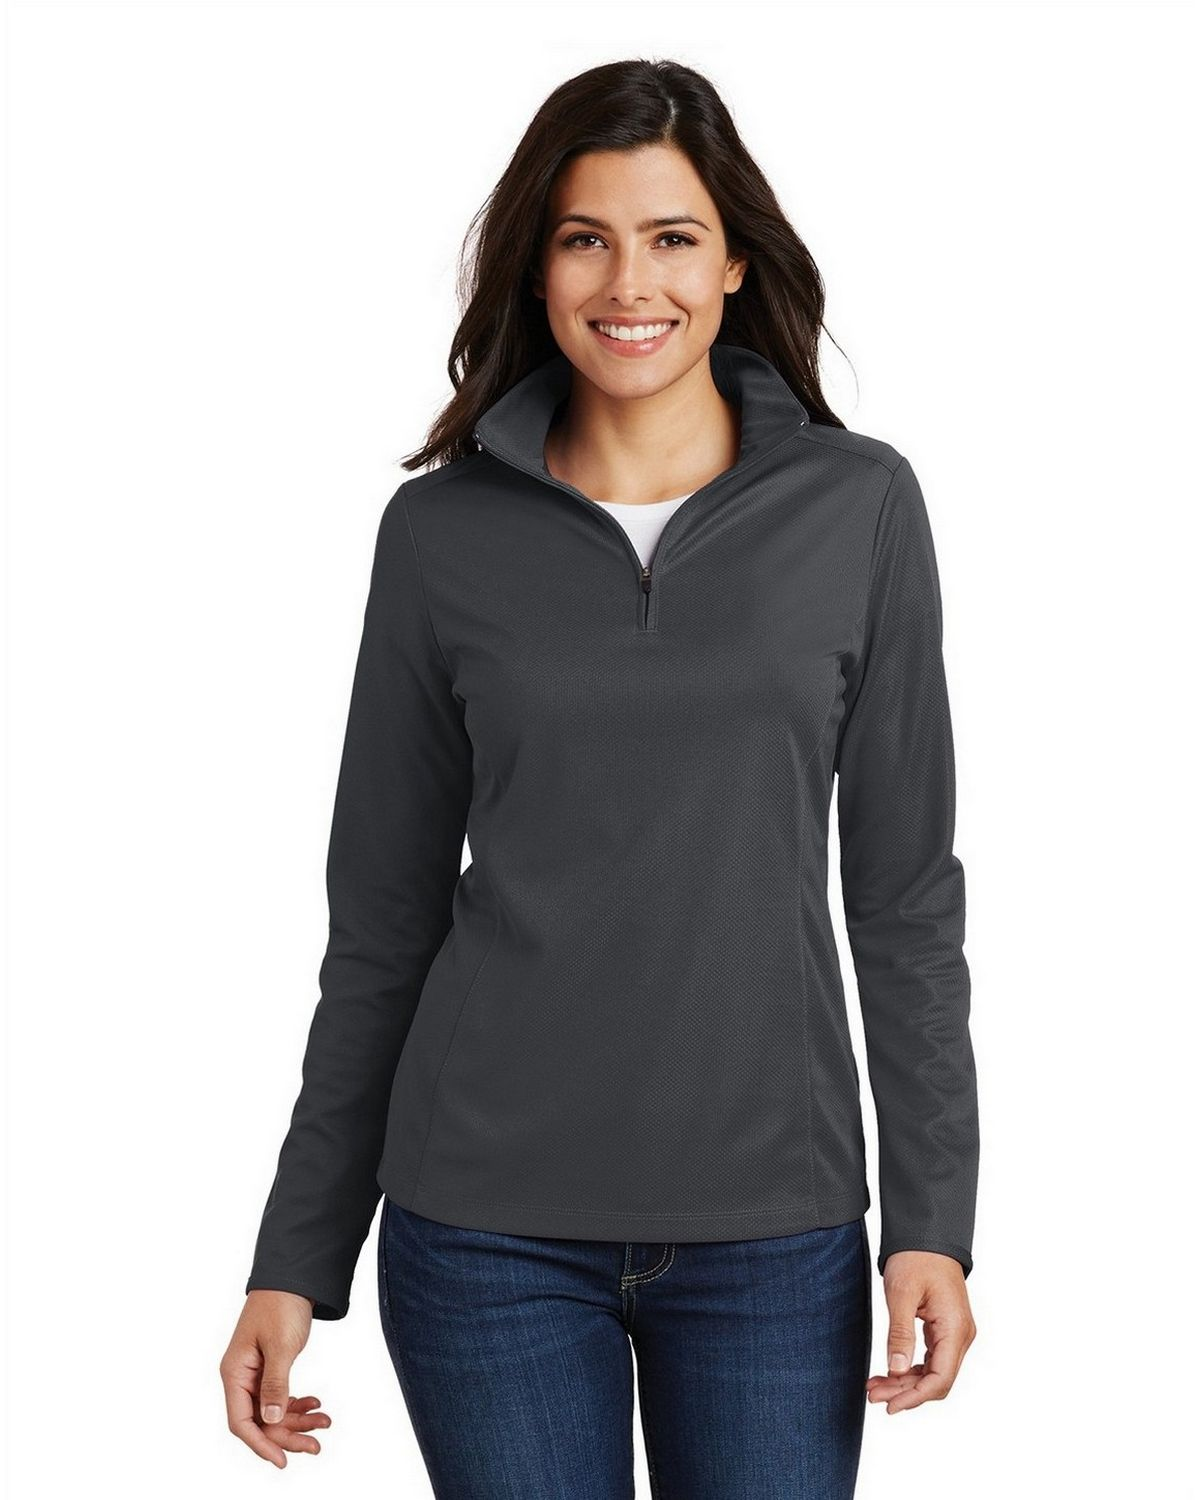 Port Authority L806 Women's Pinpoint Mesh 1/2-Zip - Battleship Grey - XS from Port Authority